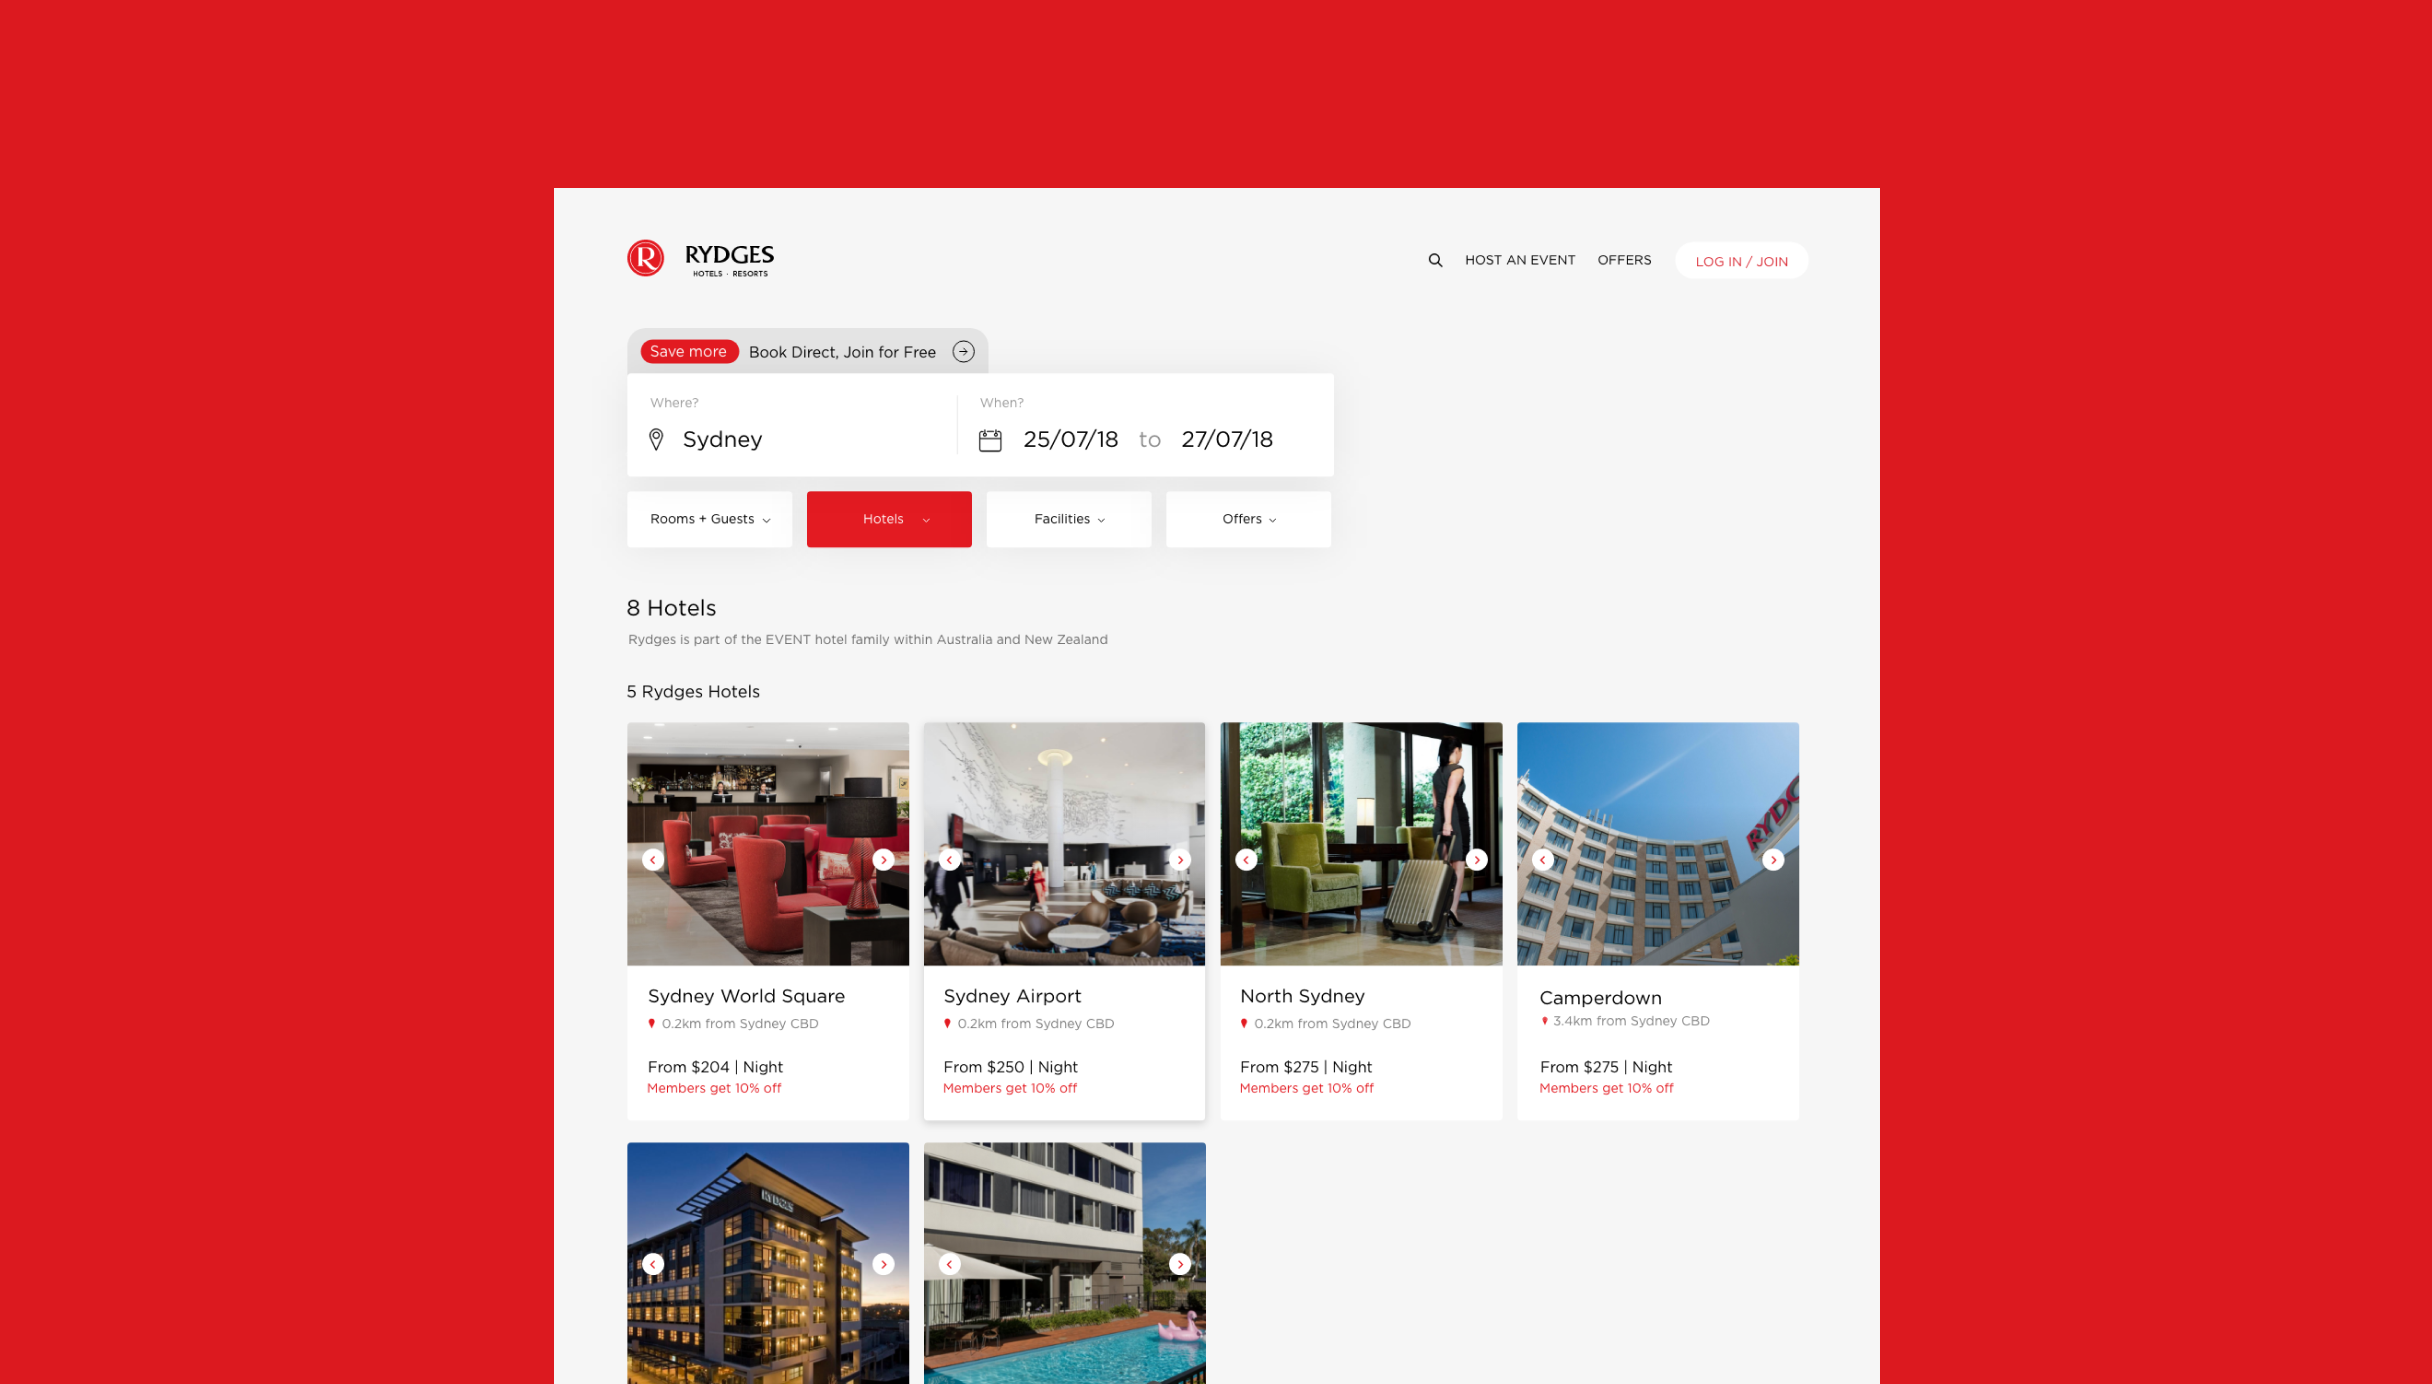 EVENT Rydges new website design, showcasing the new search design